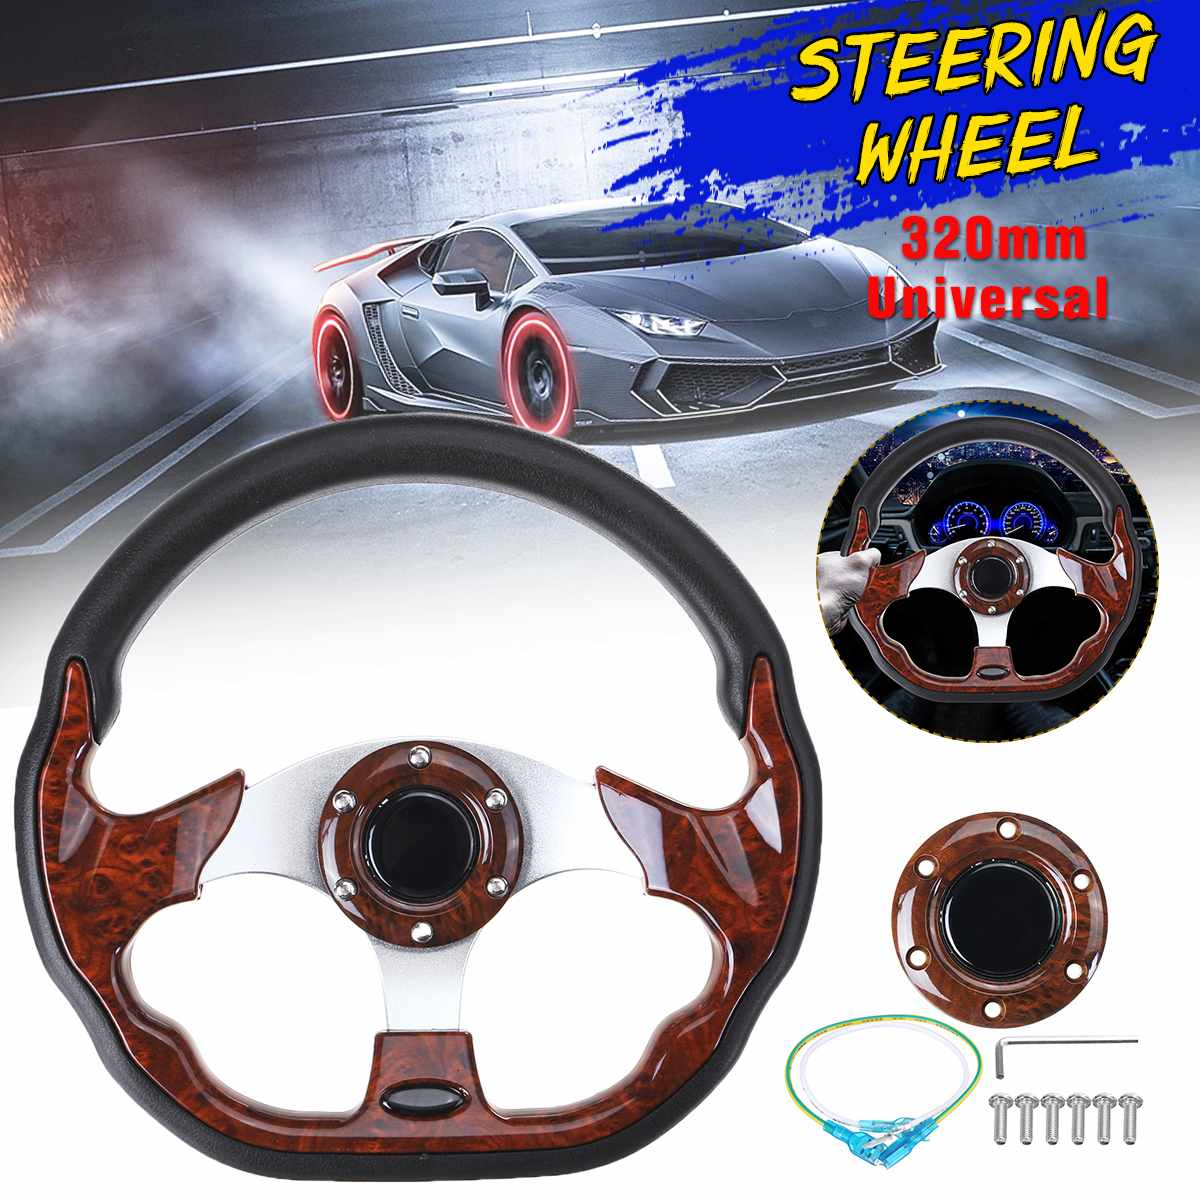 320mm Universal Car Racing Steering Wheel Aluminum Go-Kart Racing Sport Steering Wheel Auto Modification(China)